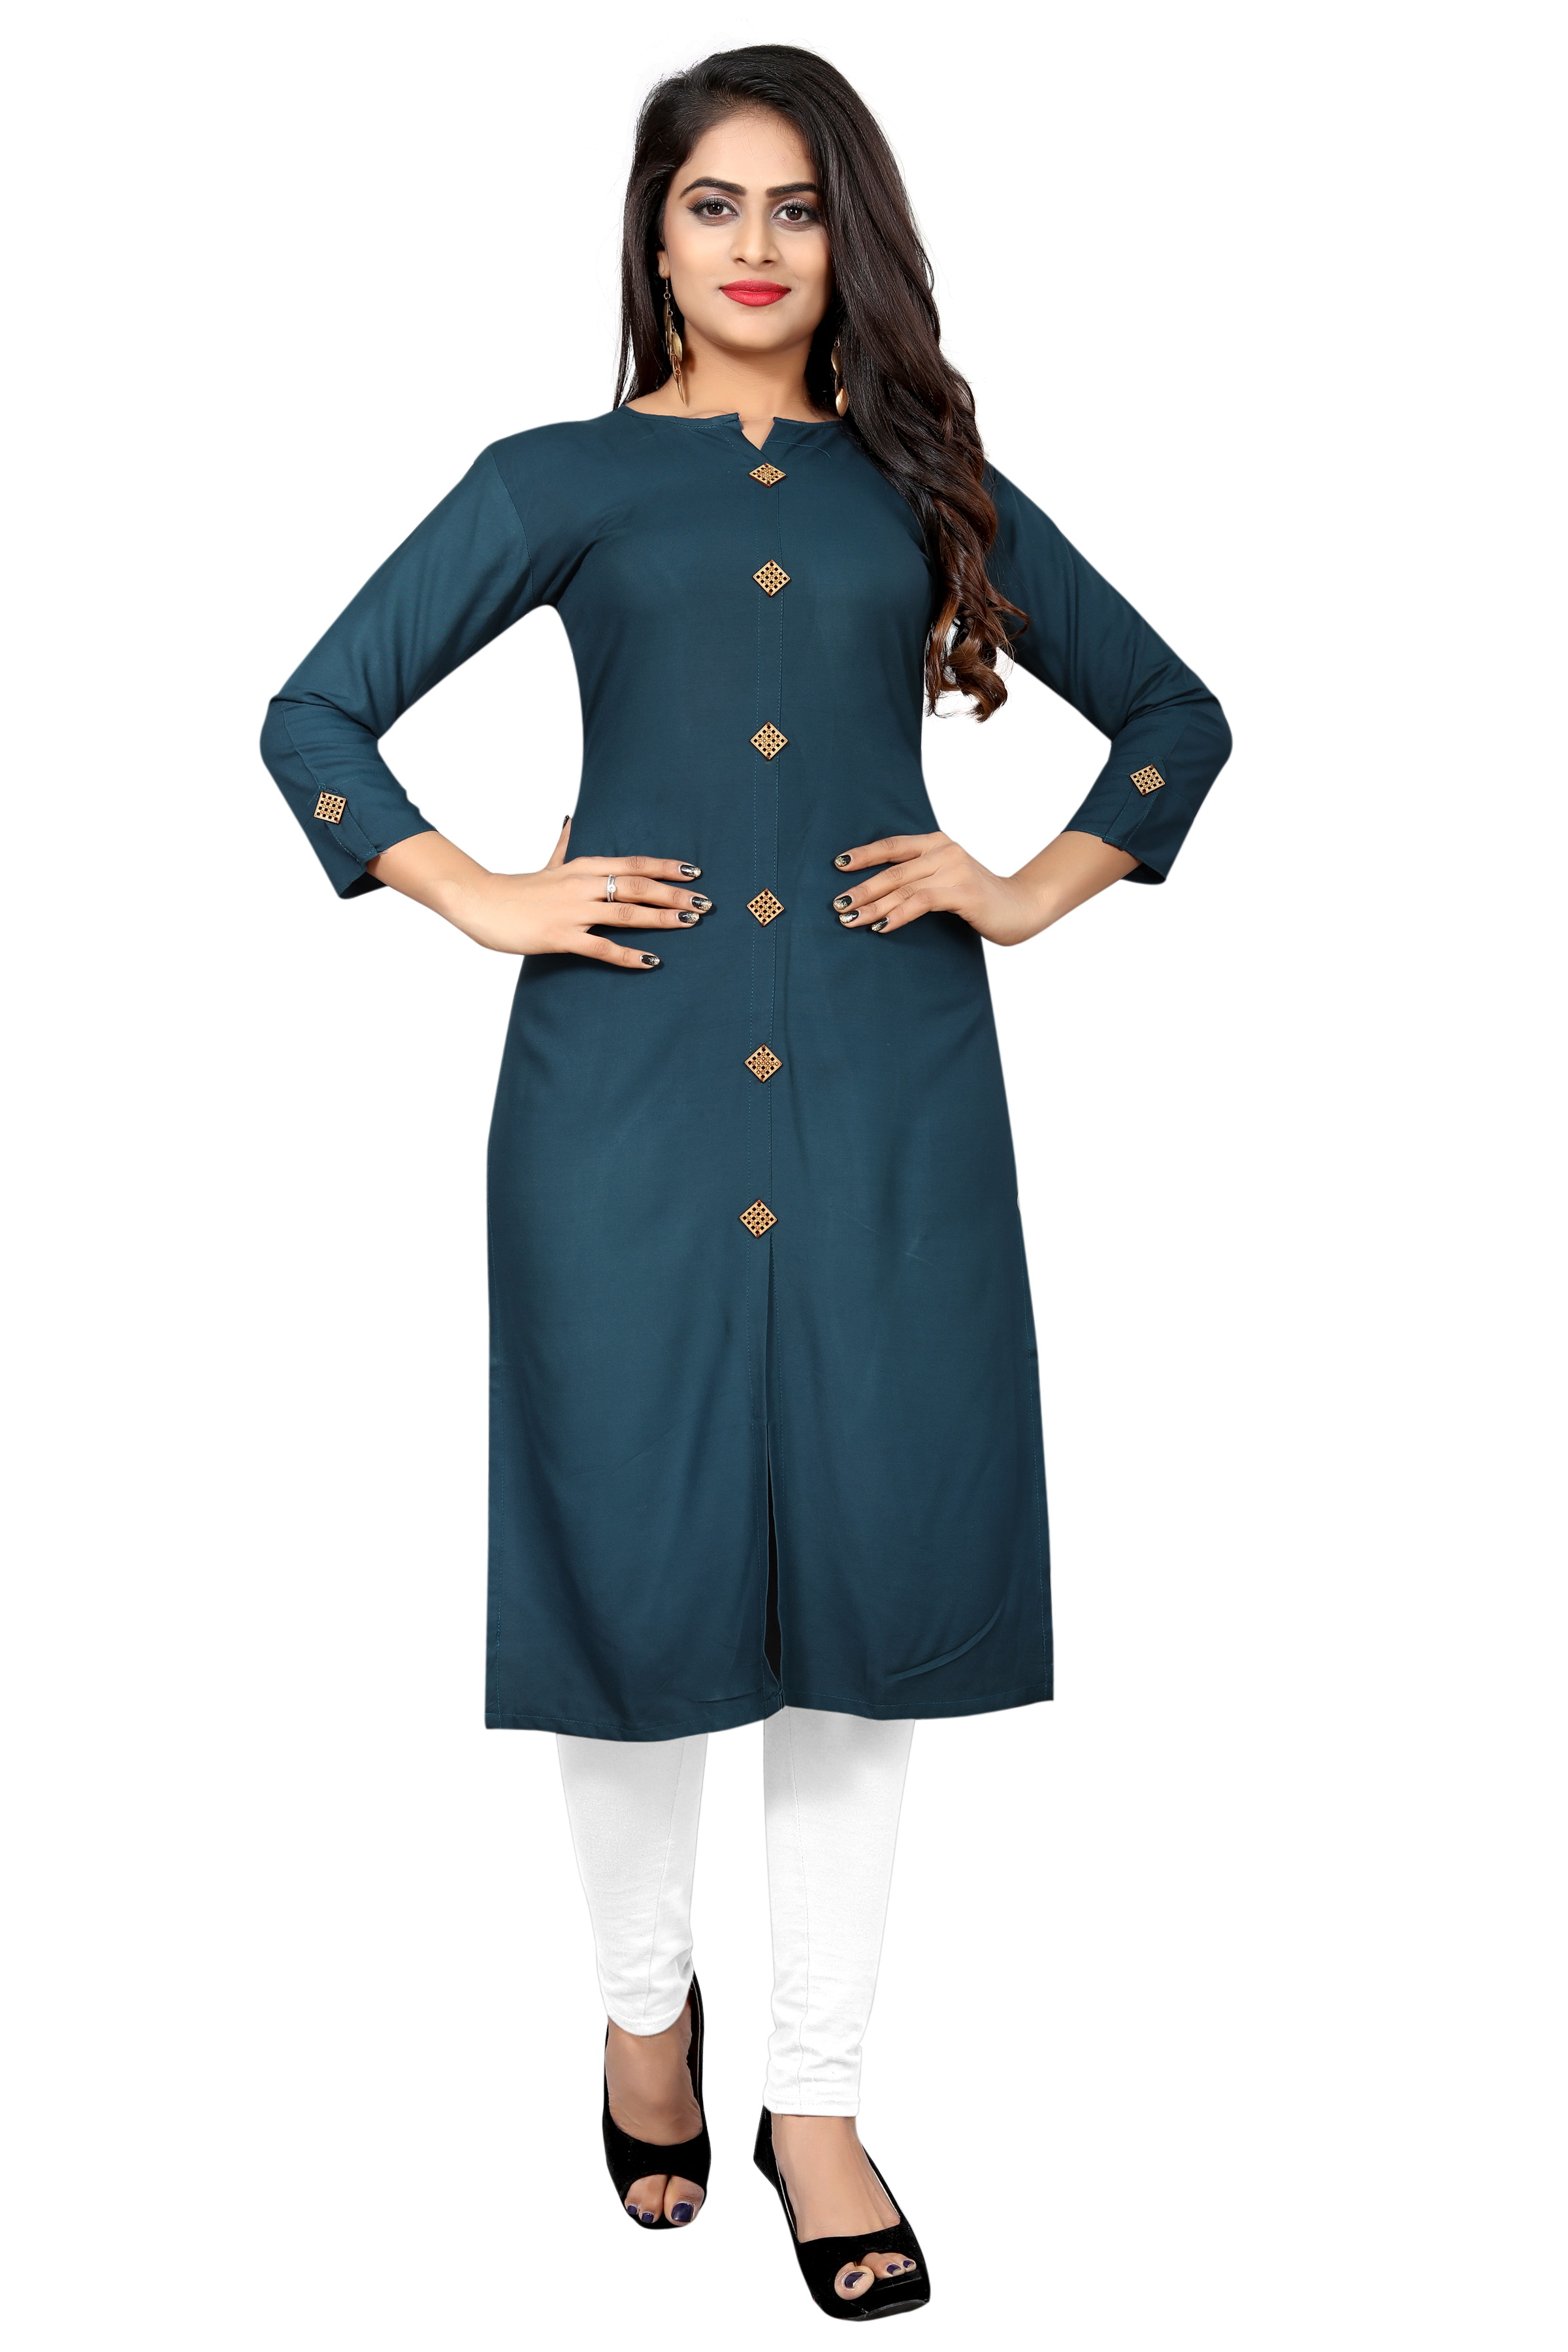 Beelee typs Teal Casual Rayon Solid Women Stitched Kurti